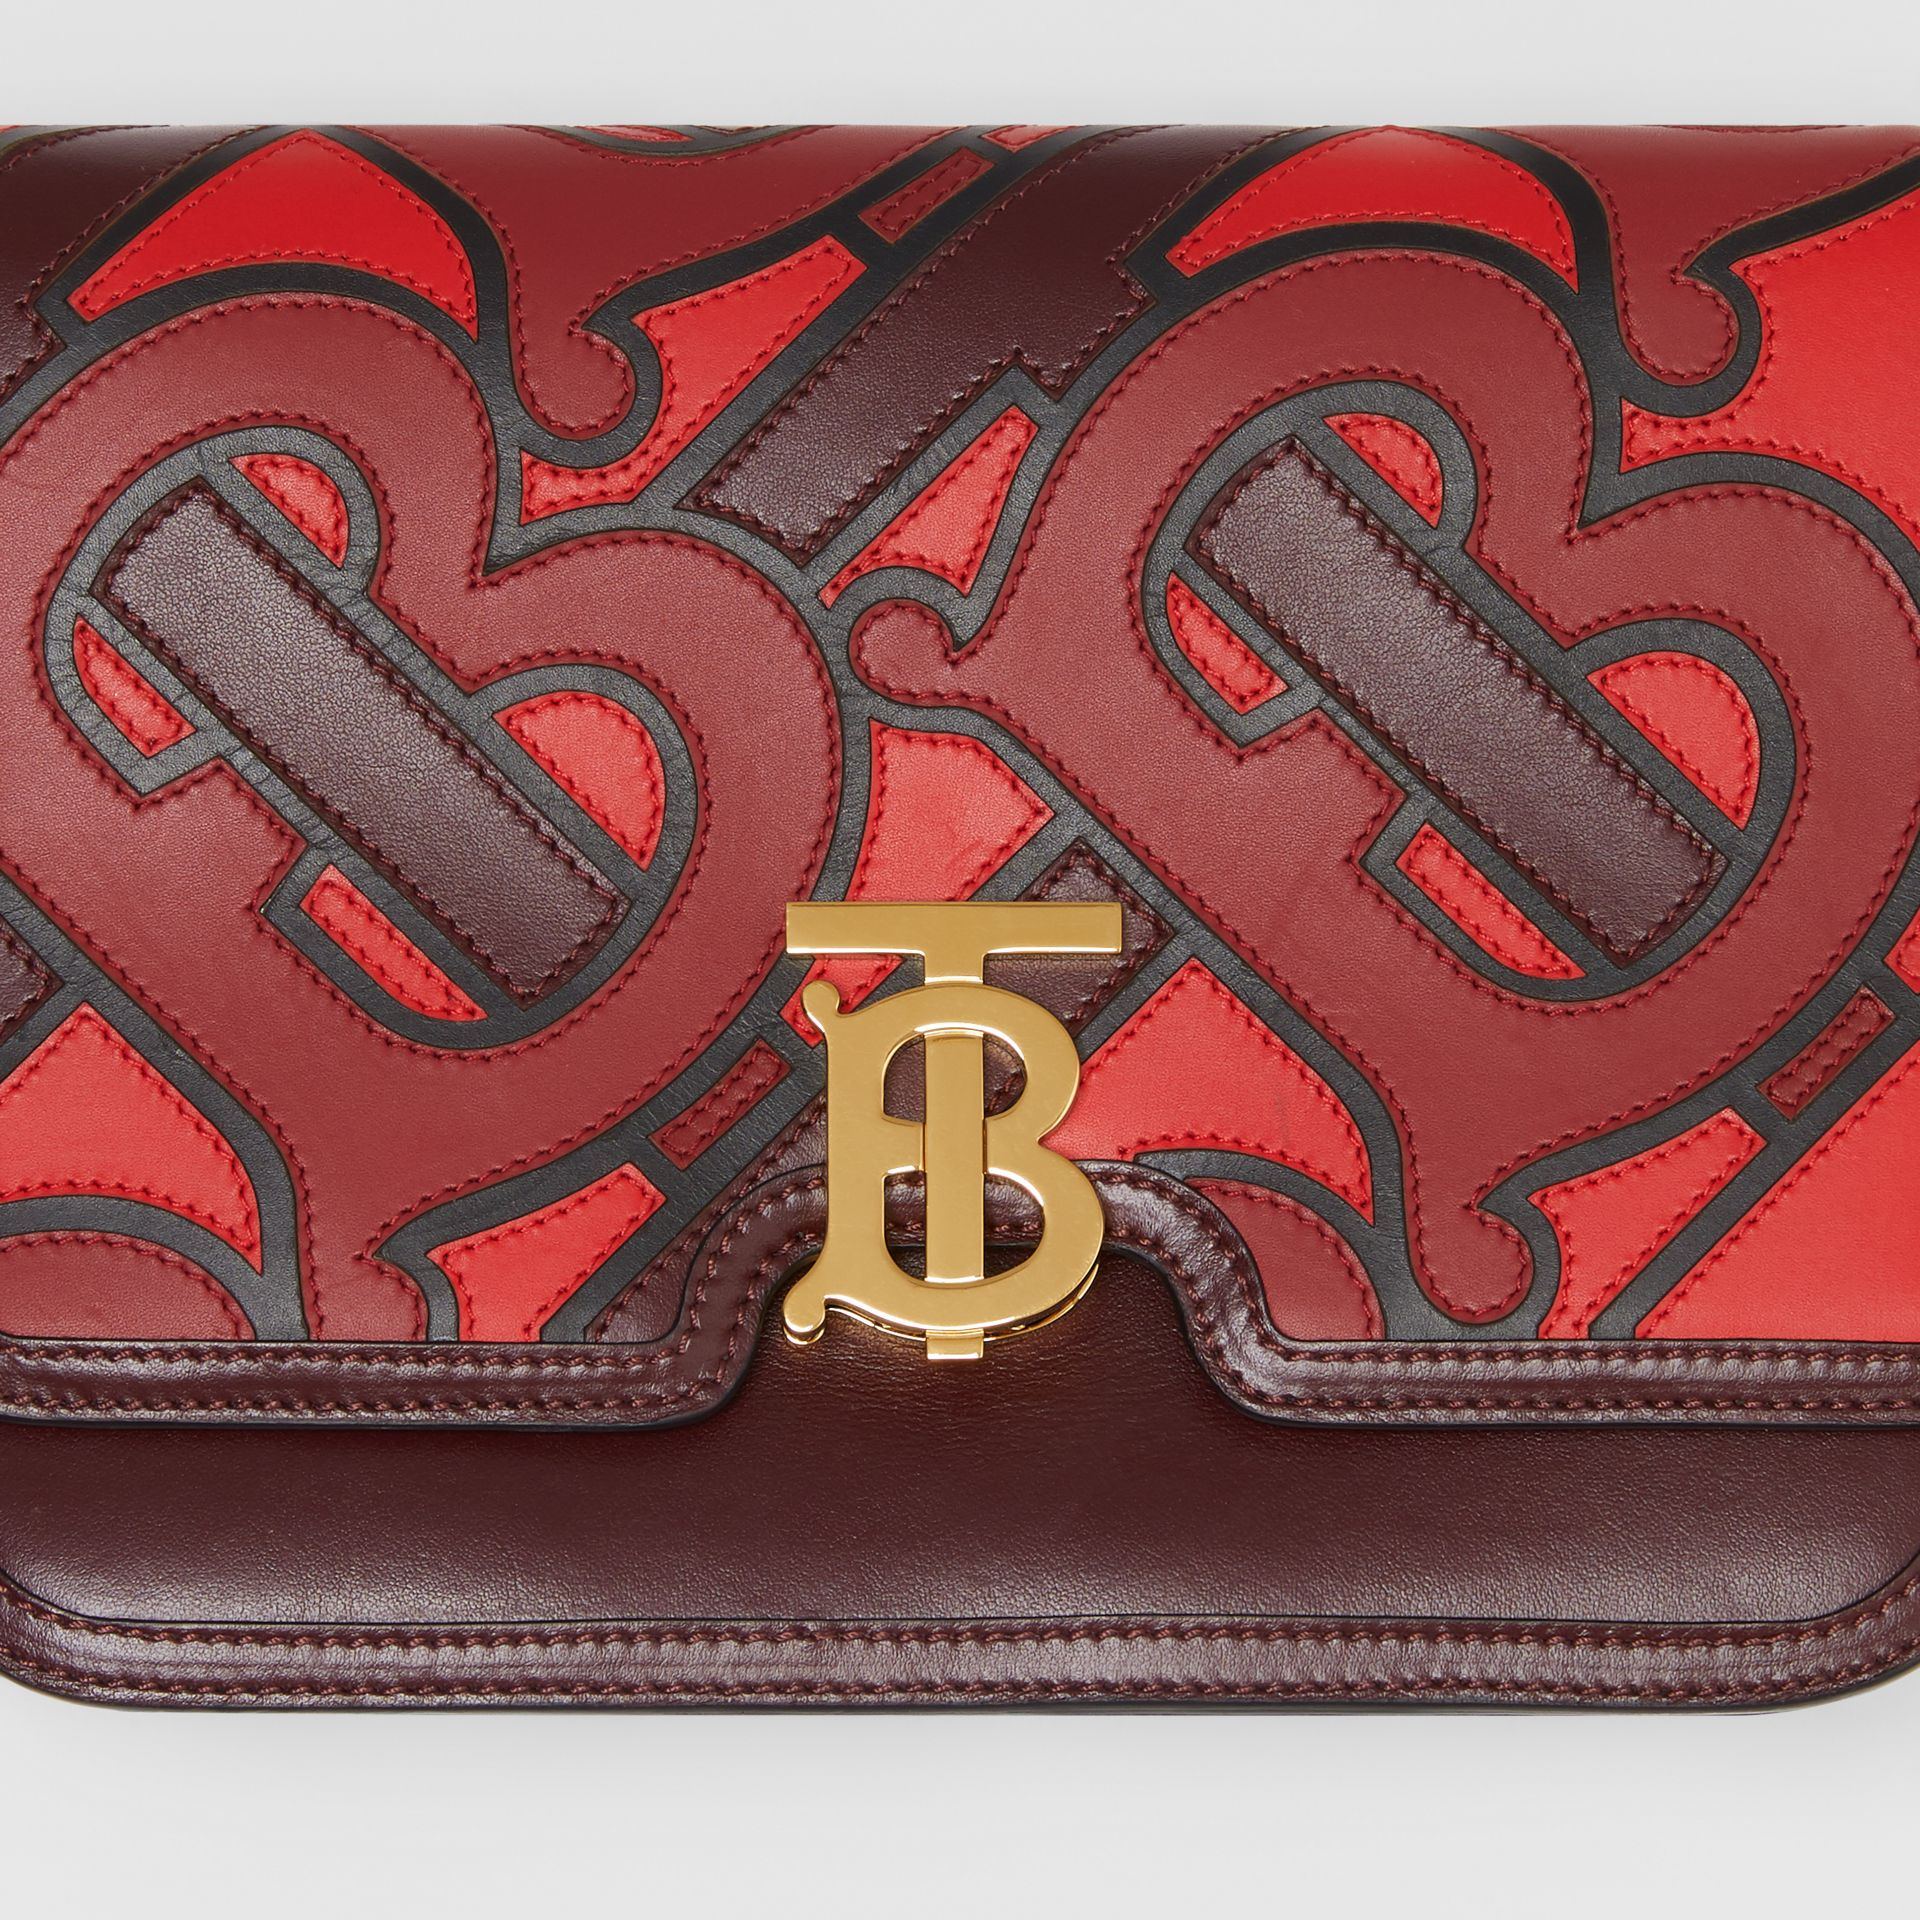 Medium Monogram Appliqué Leather TB Bag in Oxblood - Women | Burberry Canada - gallery image 1